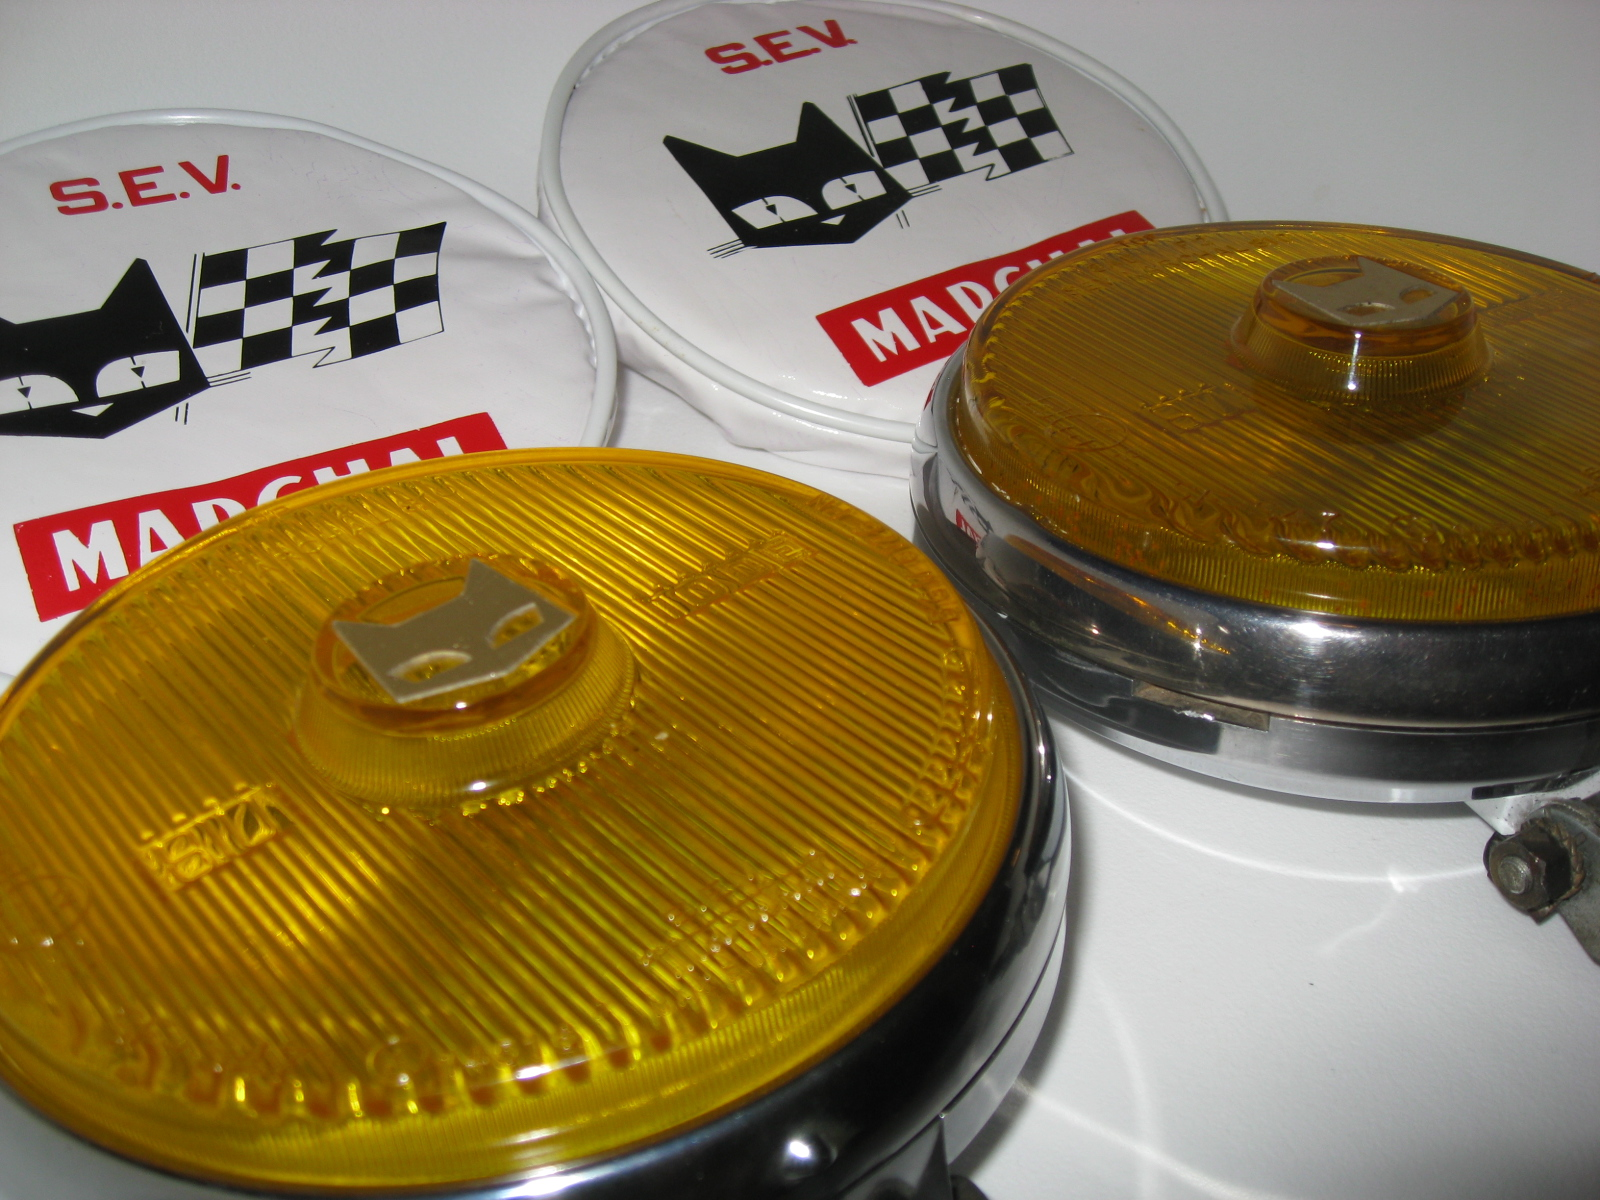 Marchal  Fog Lights  Covers Parts For Sale BMW  FAQ - Us zip codes plus 4